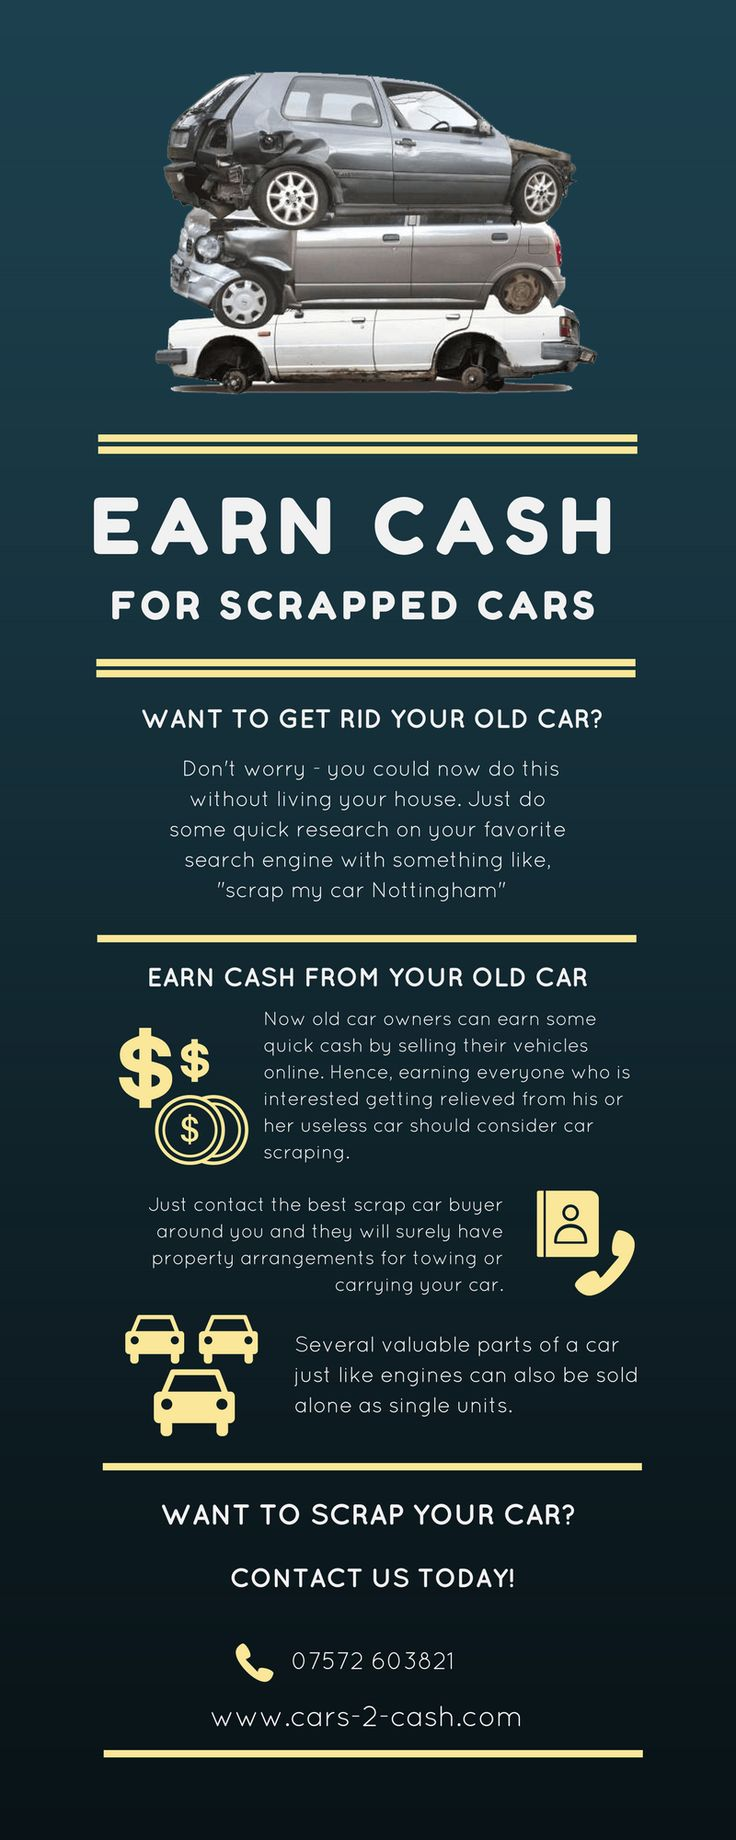 How to scrap car with no log book - Old Car Owners Can Earn Some Quick Cash By Selling Their Old Cars Hence